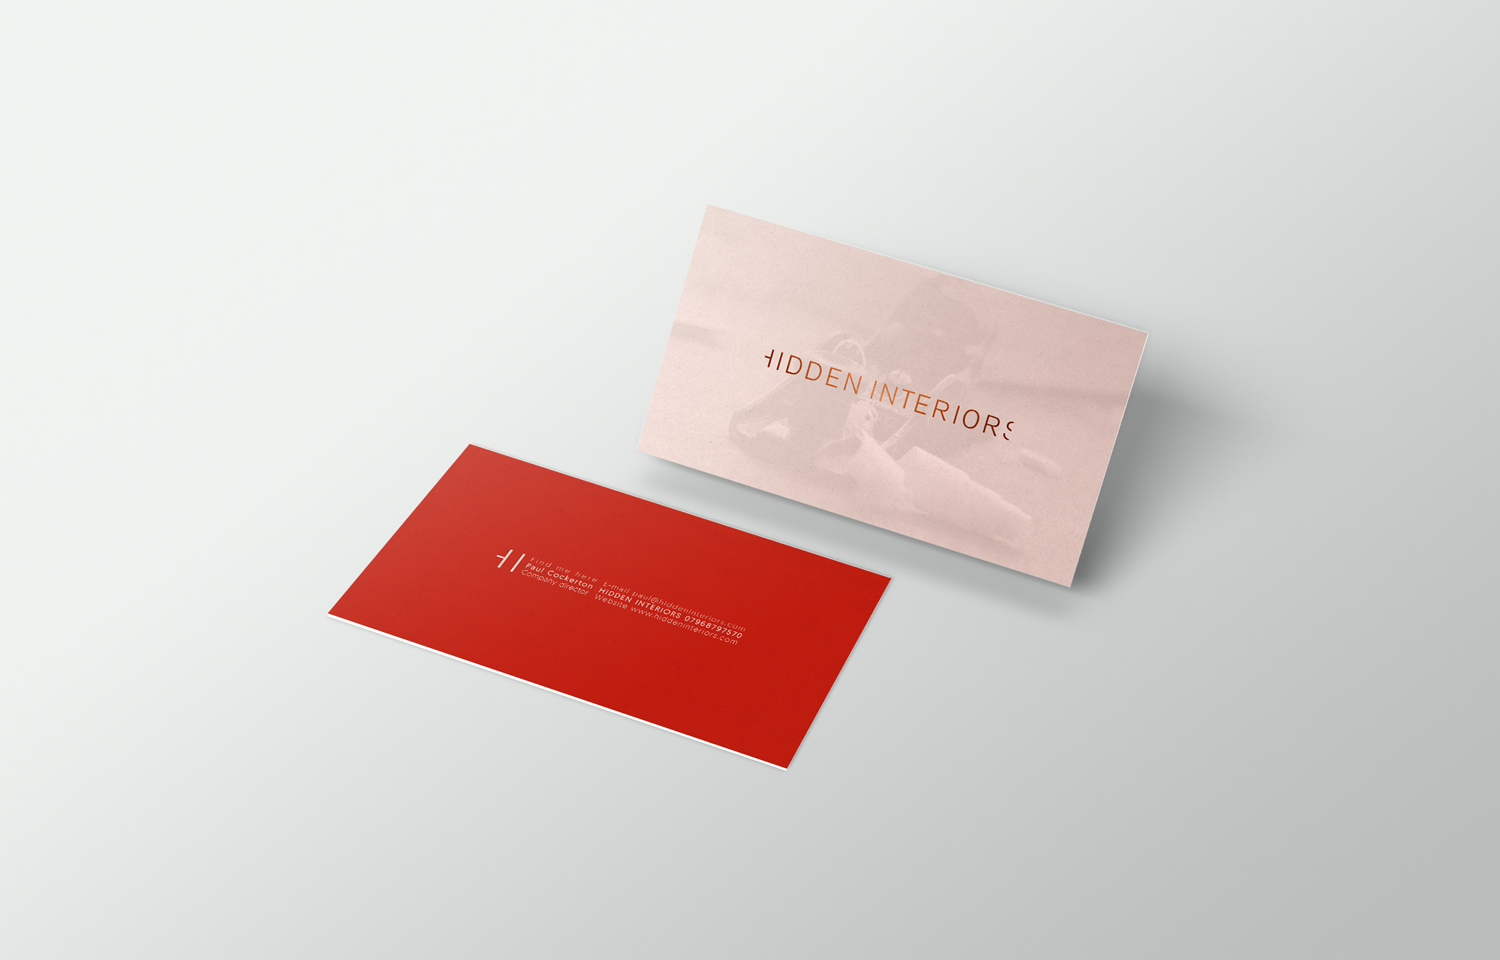 Business card design for Hidden Interiors.